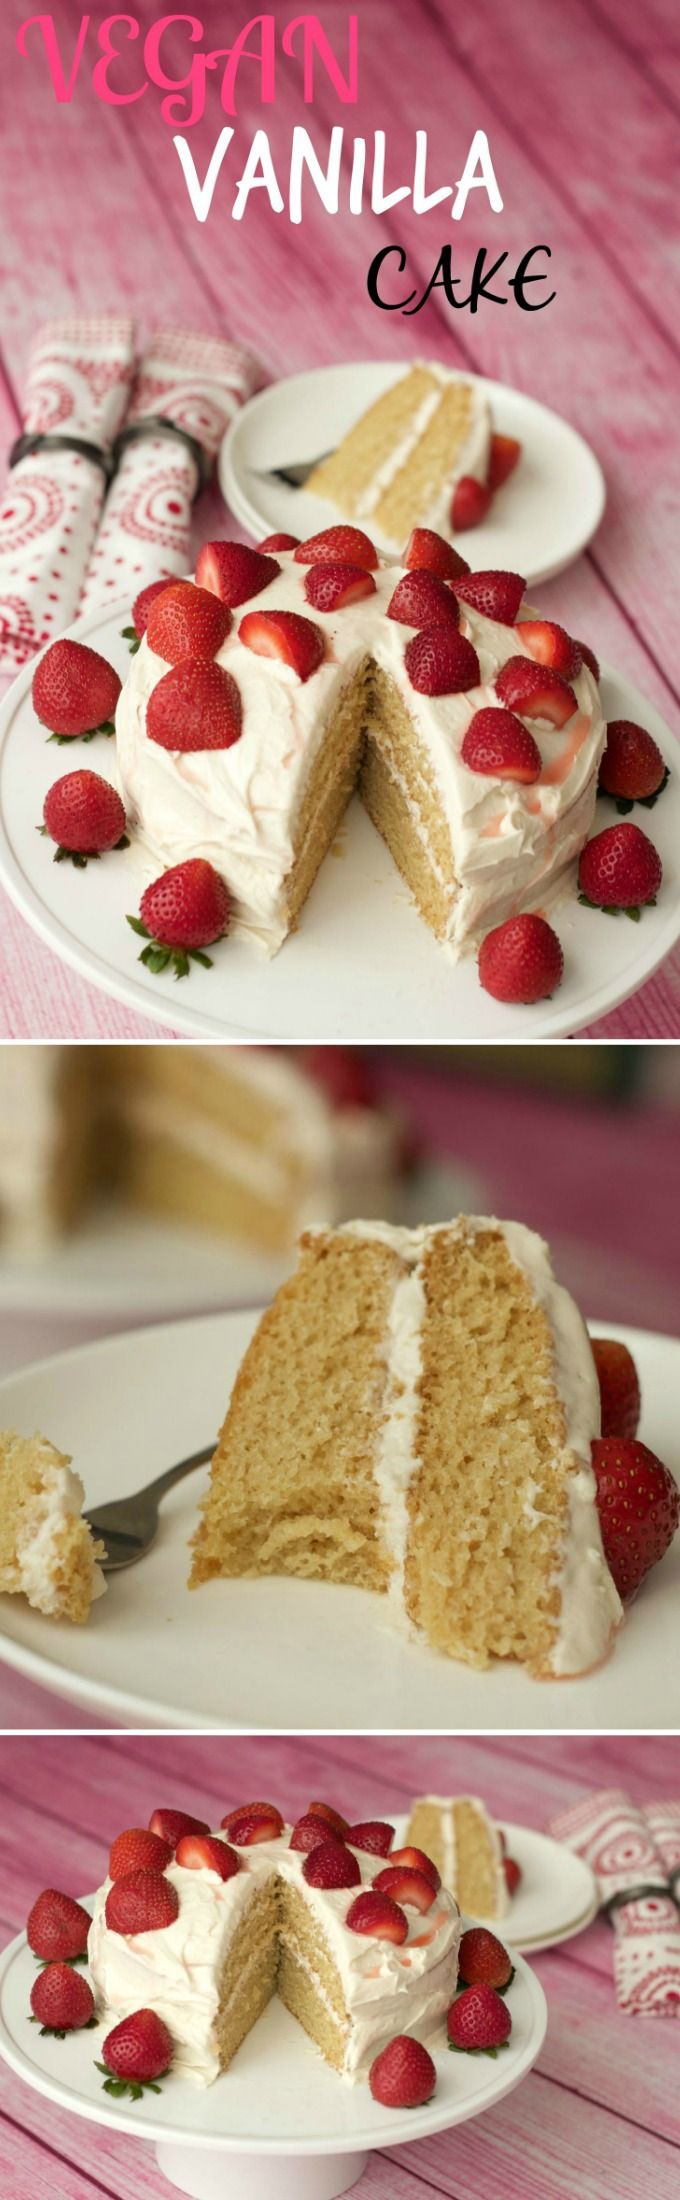 Vegan Vanilla Cake - Light, fluffy and dreamy! Vegan | dairy-free | Vegan Cakes | Vegan Desserts | Vegan Food | Vegan Recipes